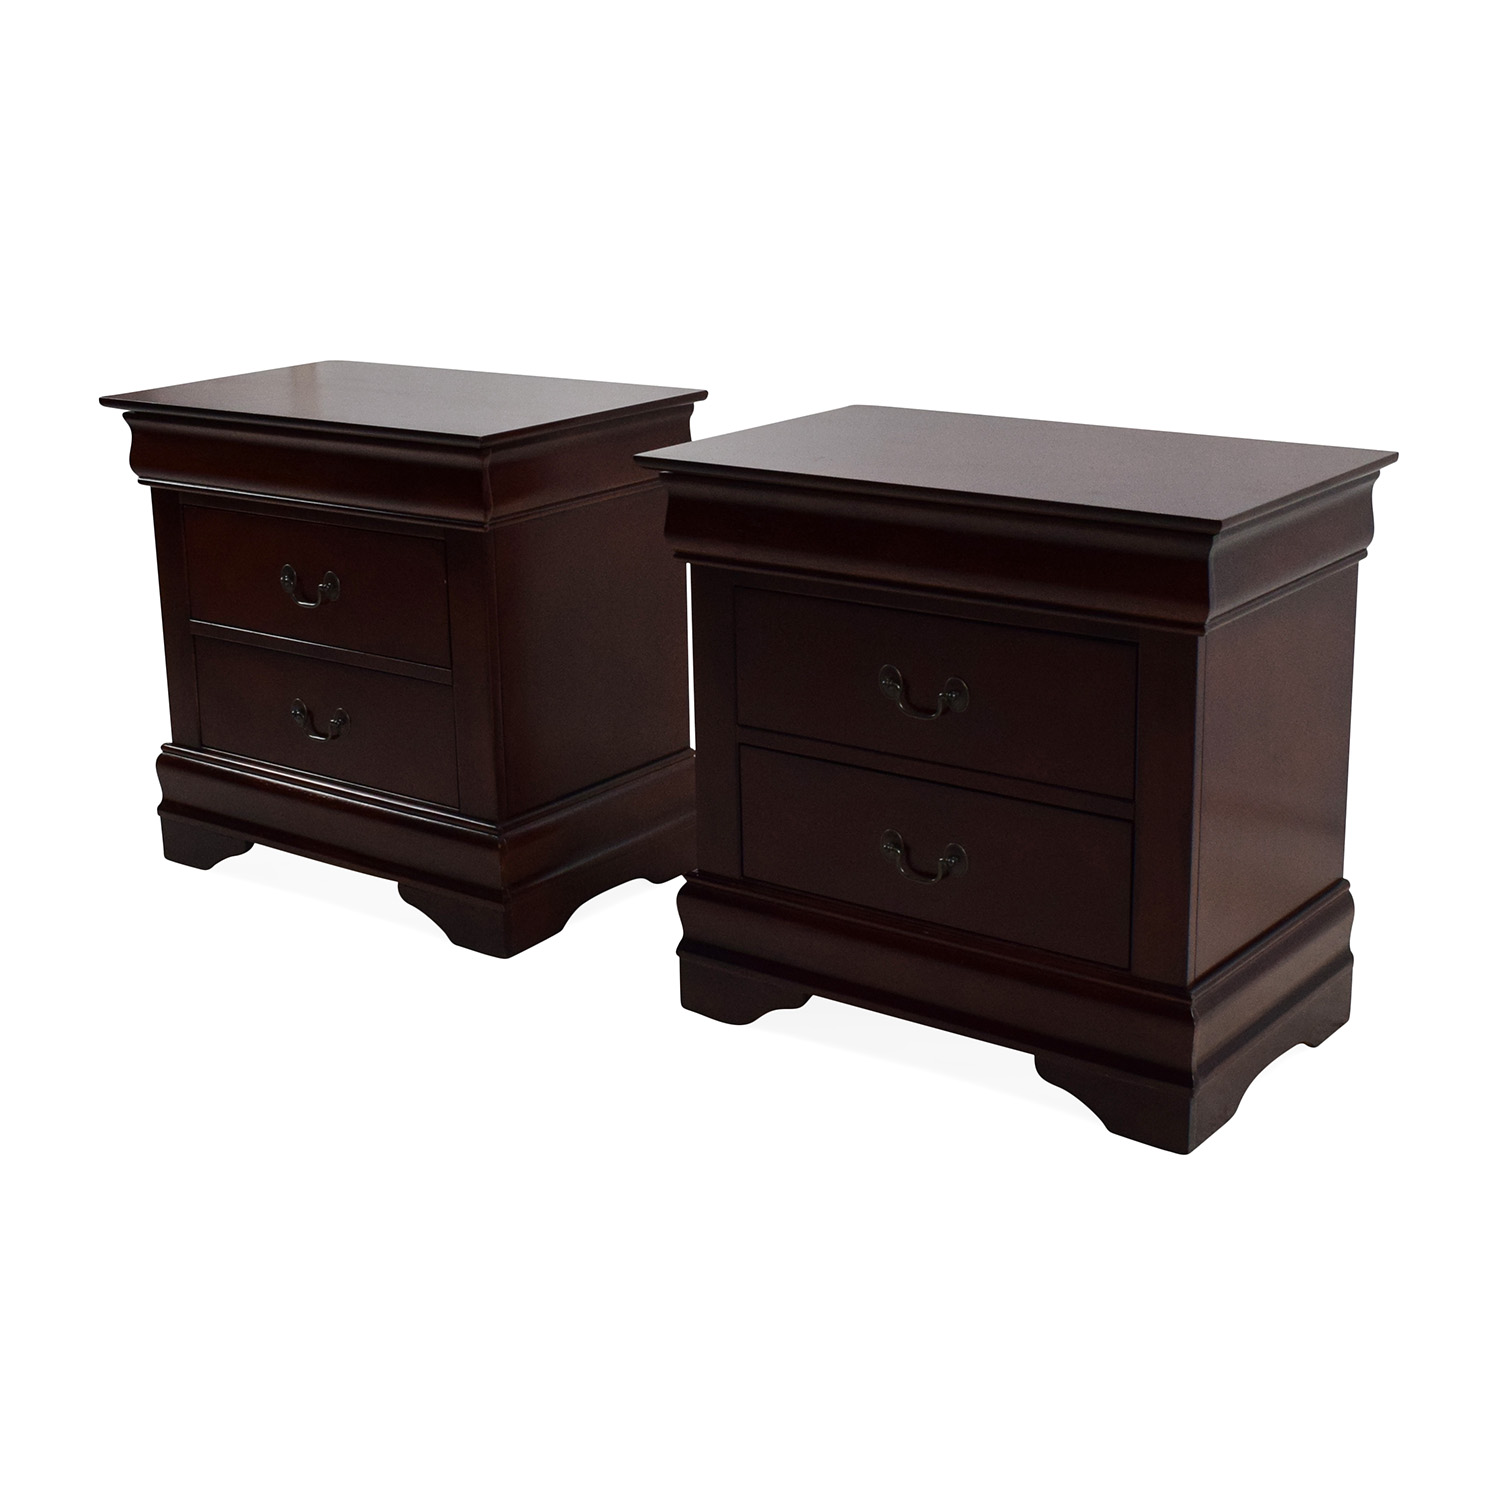 62 Off Set Of 2 Wooden Nightstands With Drawers Tables